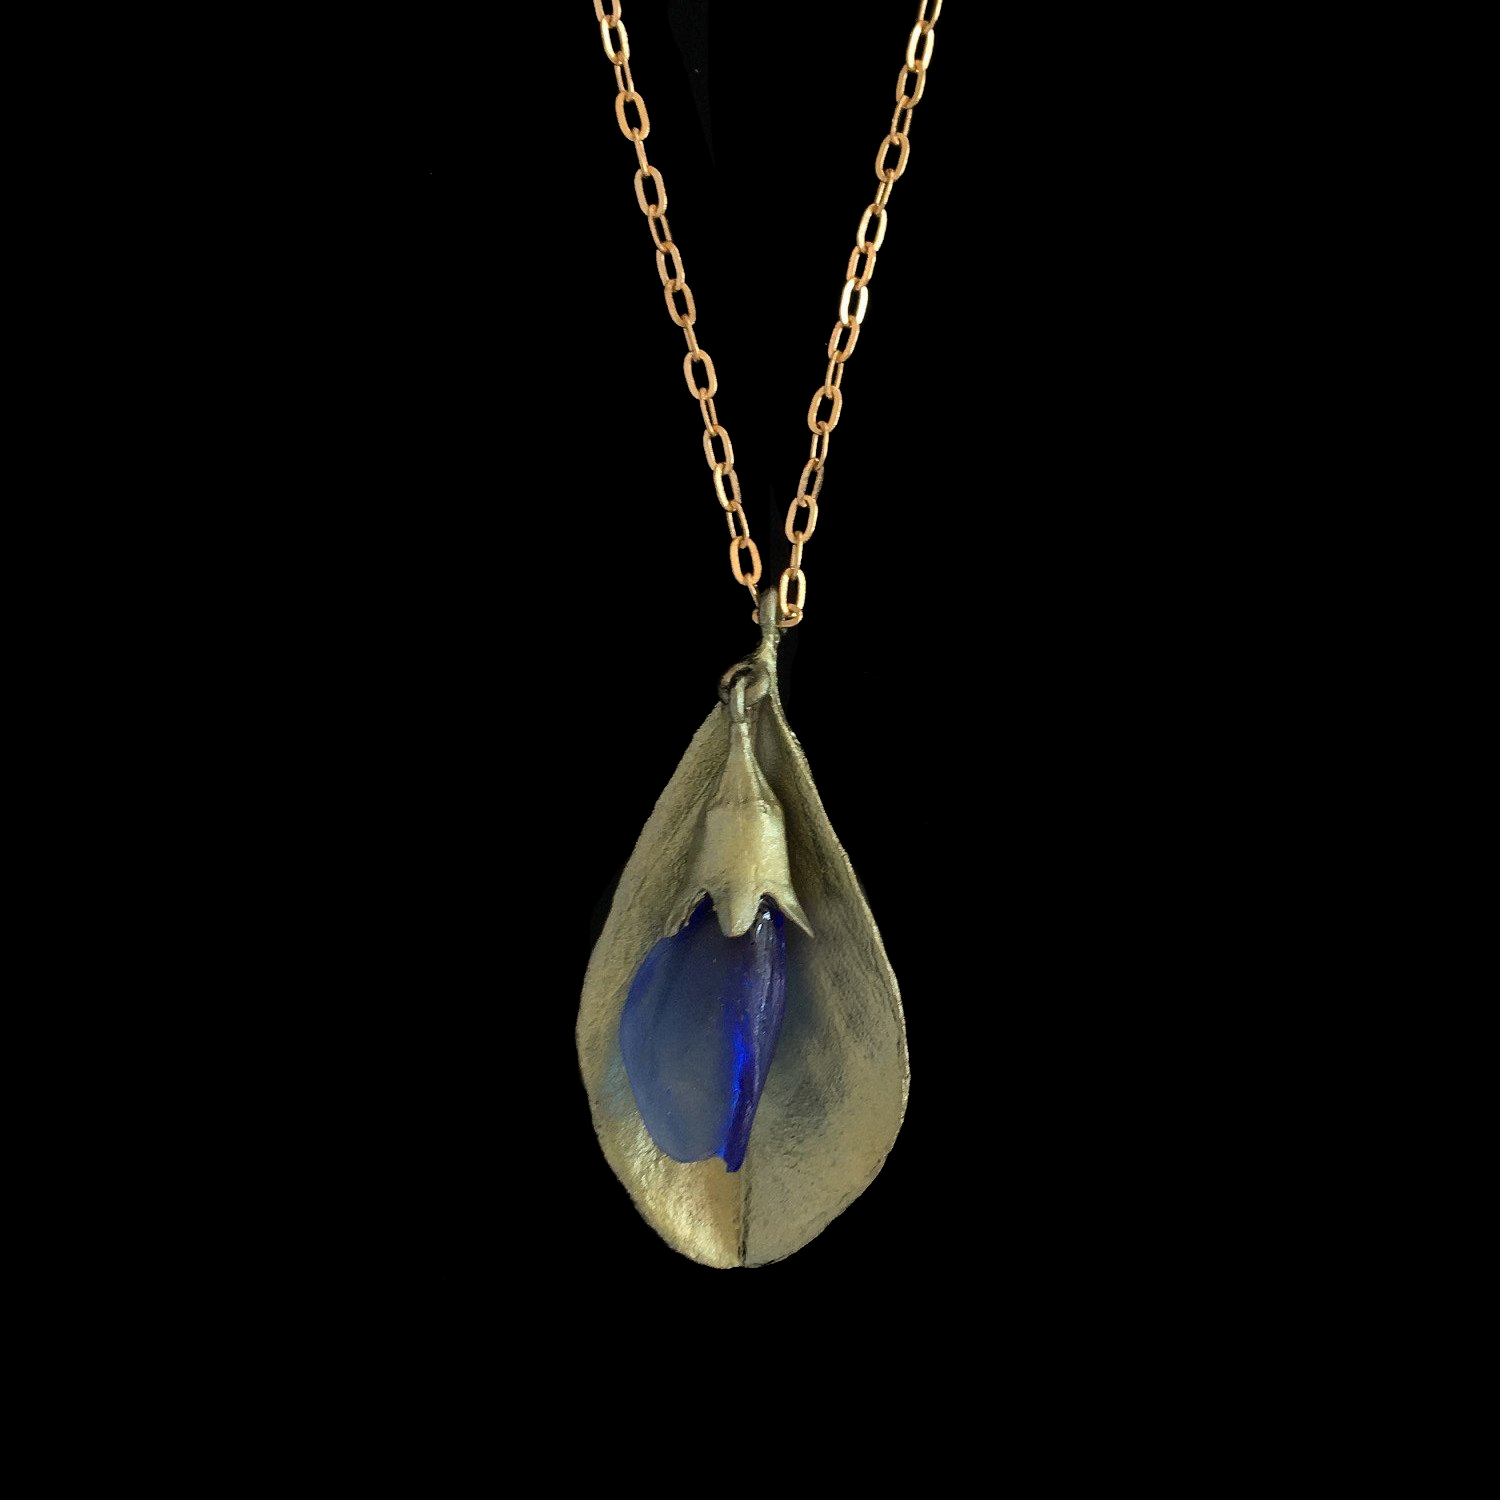 False Indigo Pendant - Glass Pendant